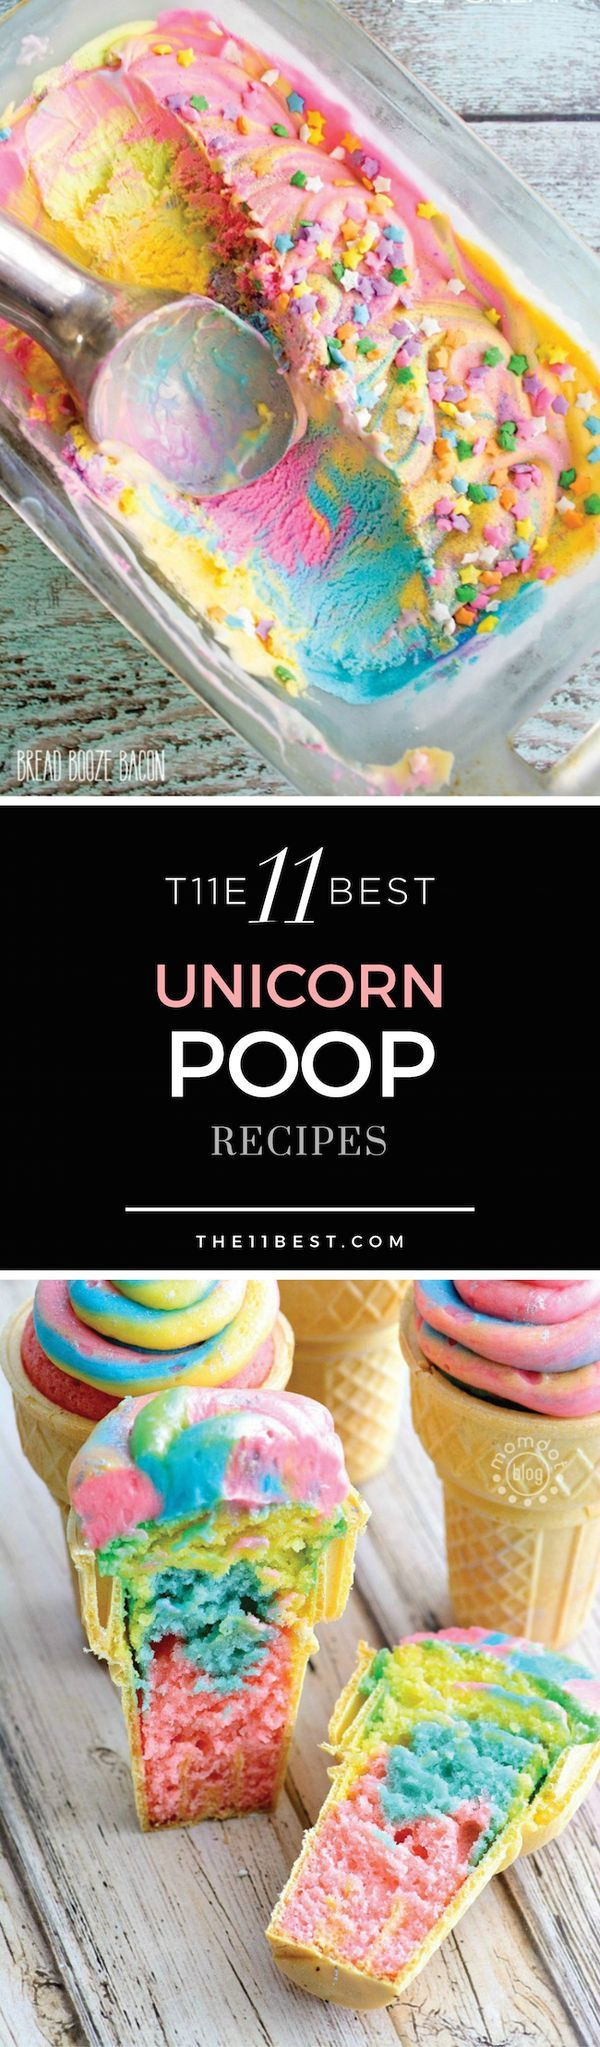 Are you looking for your next idea for a party theme for your child (or adult)? If they love unicorns, then these unicorn poop recipes may be just the ideas you've been waiting for!